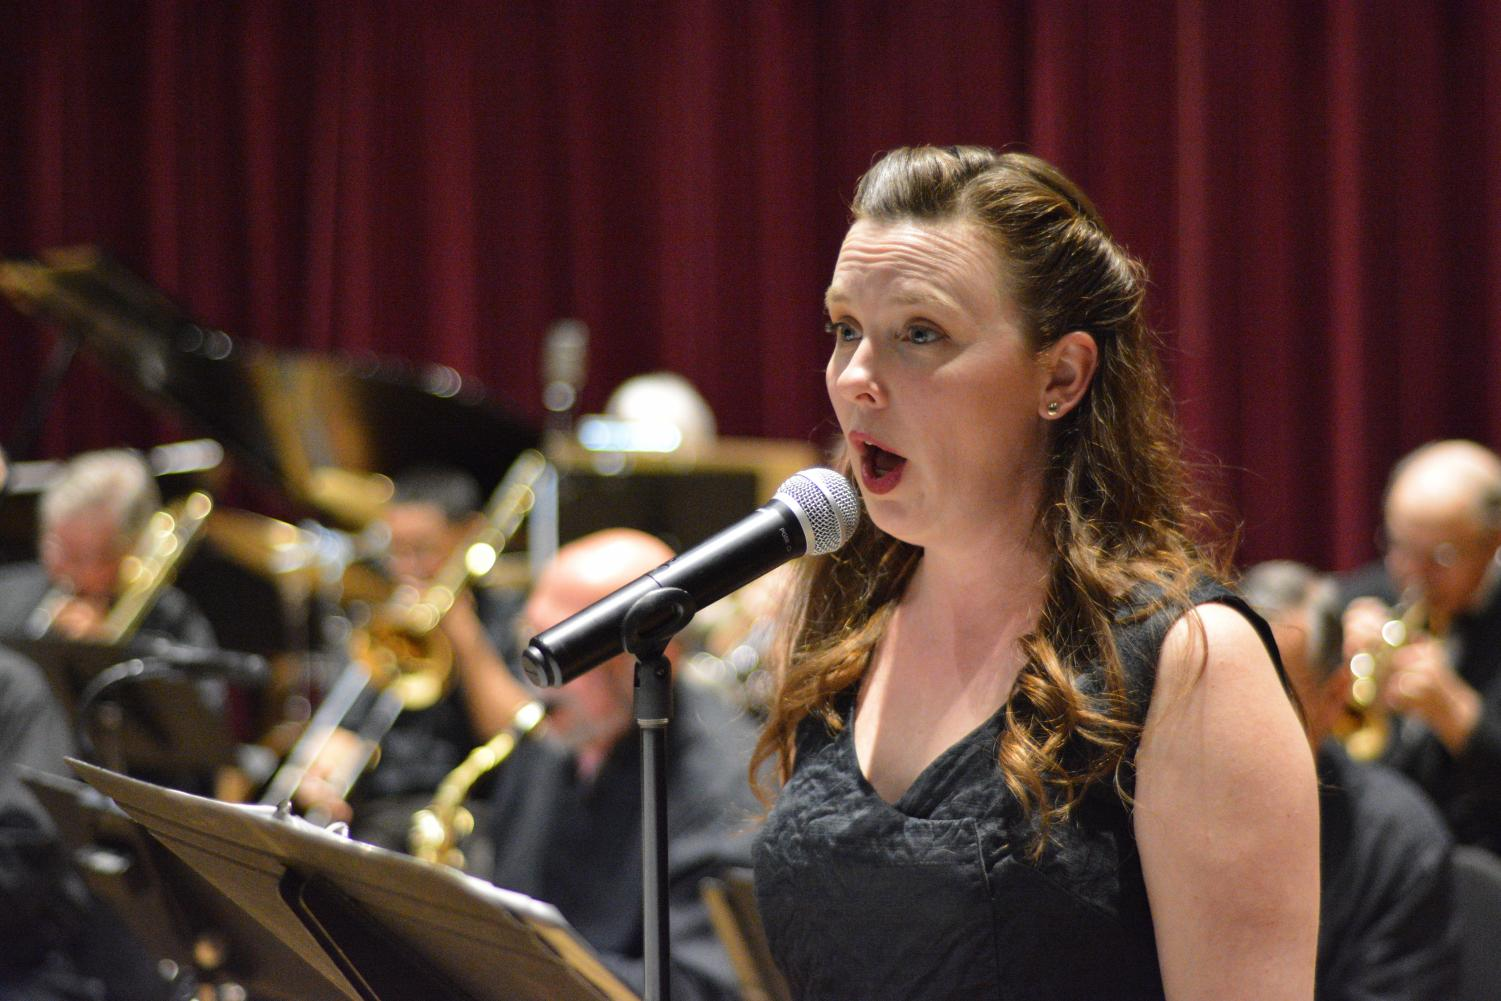 Heather Tinling singing with The Golden Gate Radio Orchestra